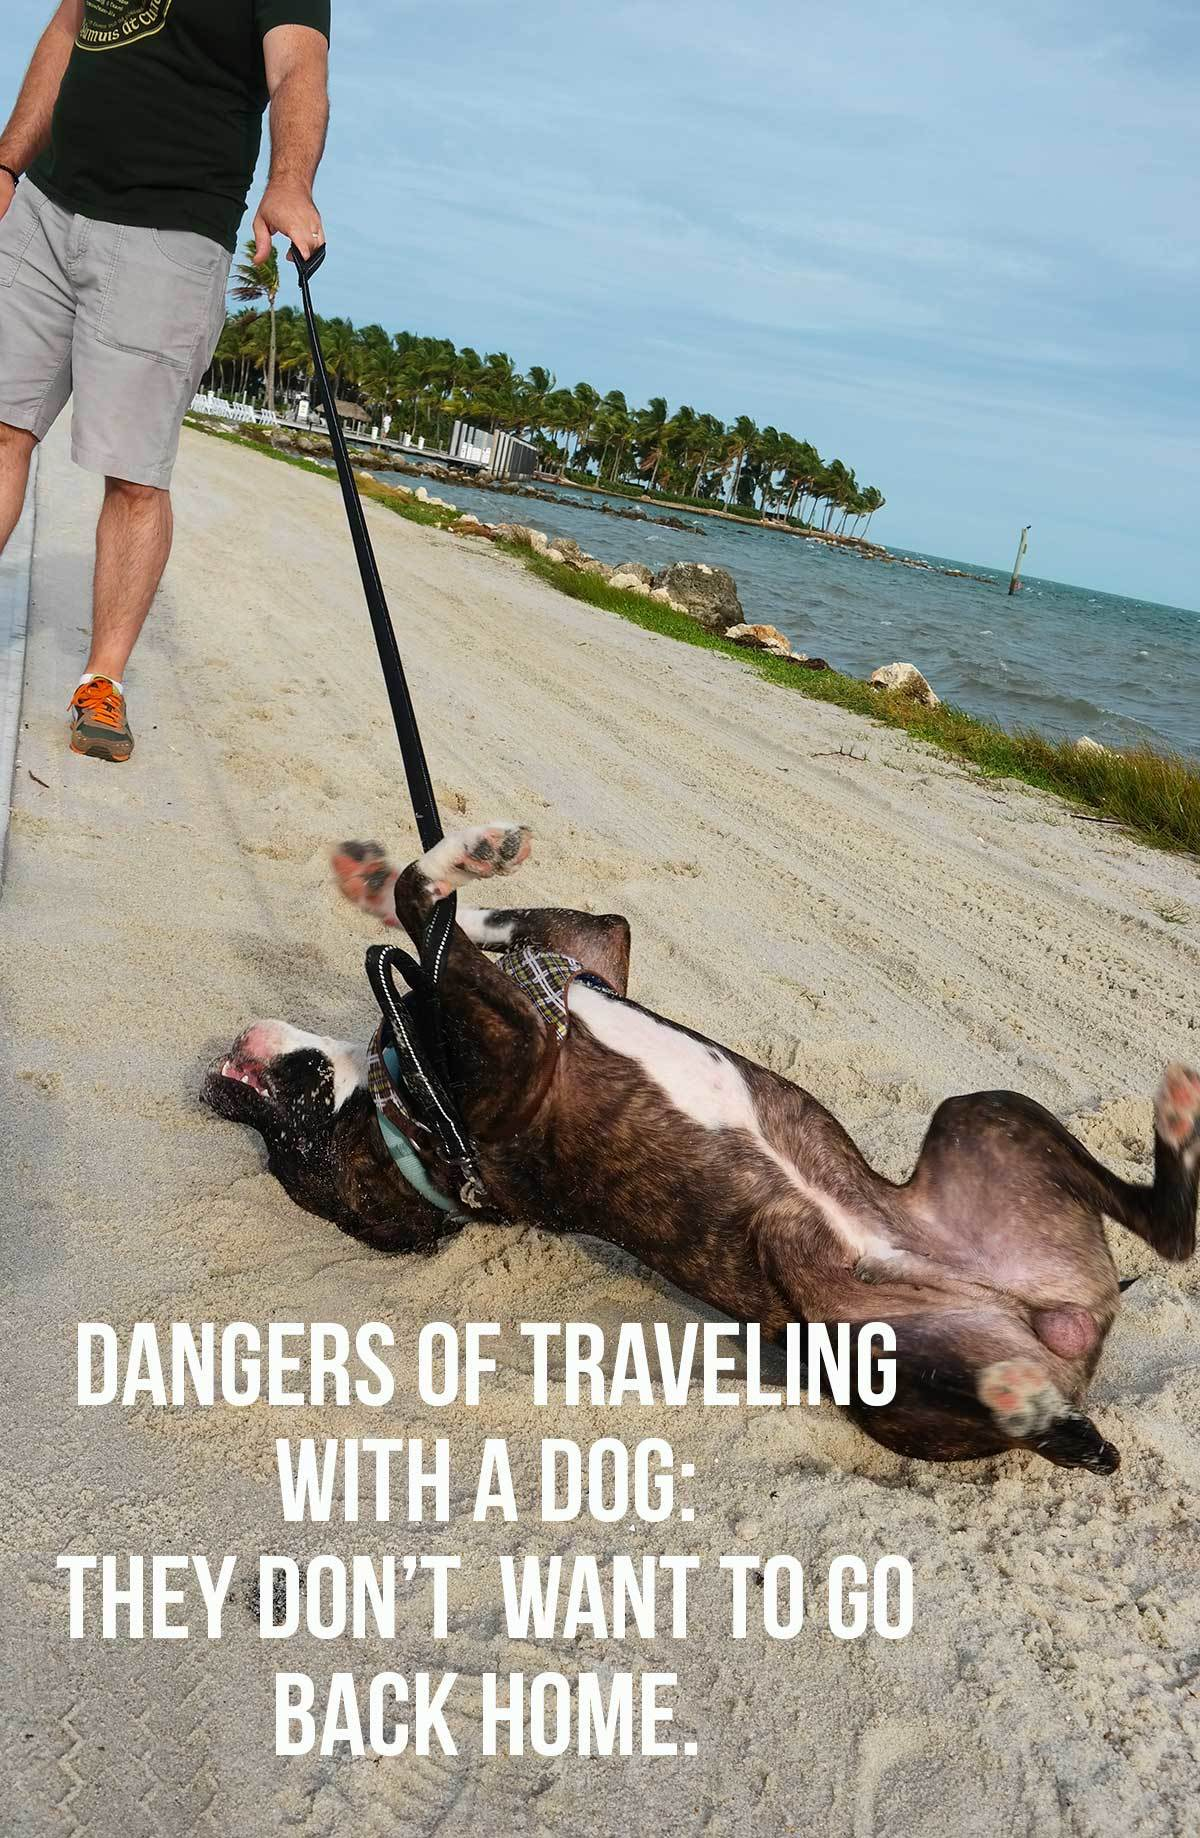 Does traveling with a dog work out? Dangers of traveling with a dog: they might not want to go back home!